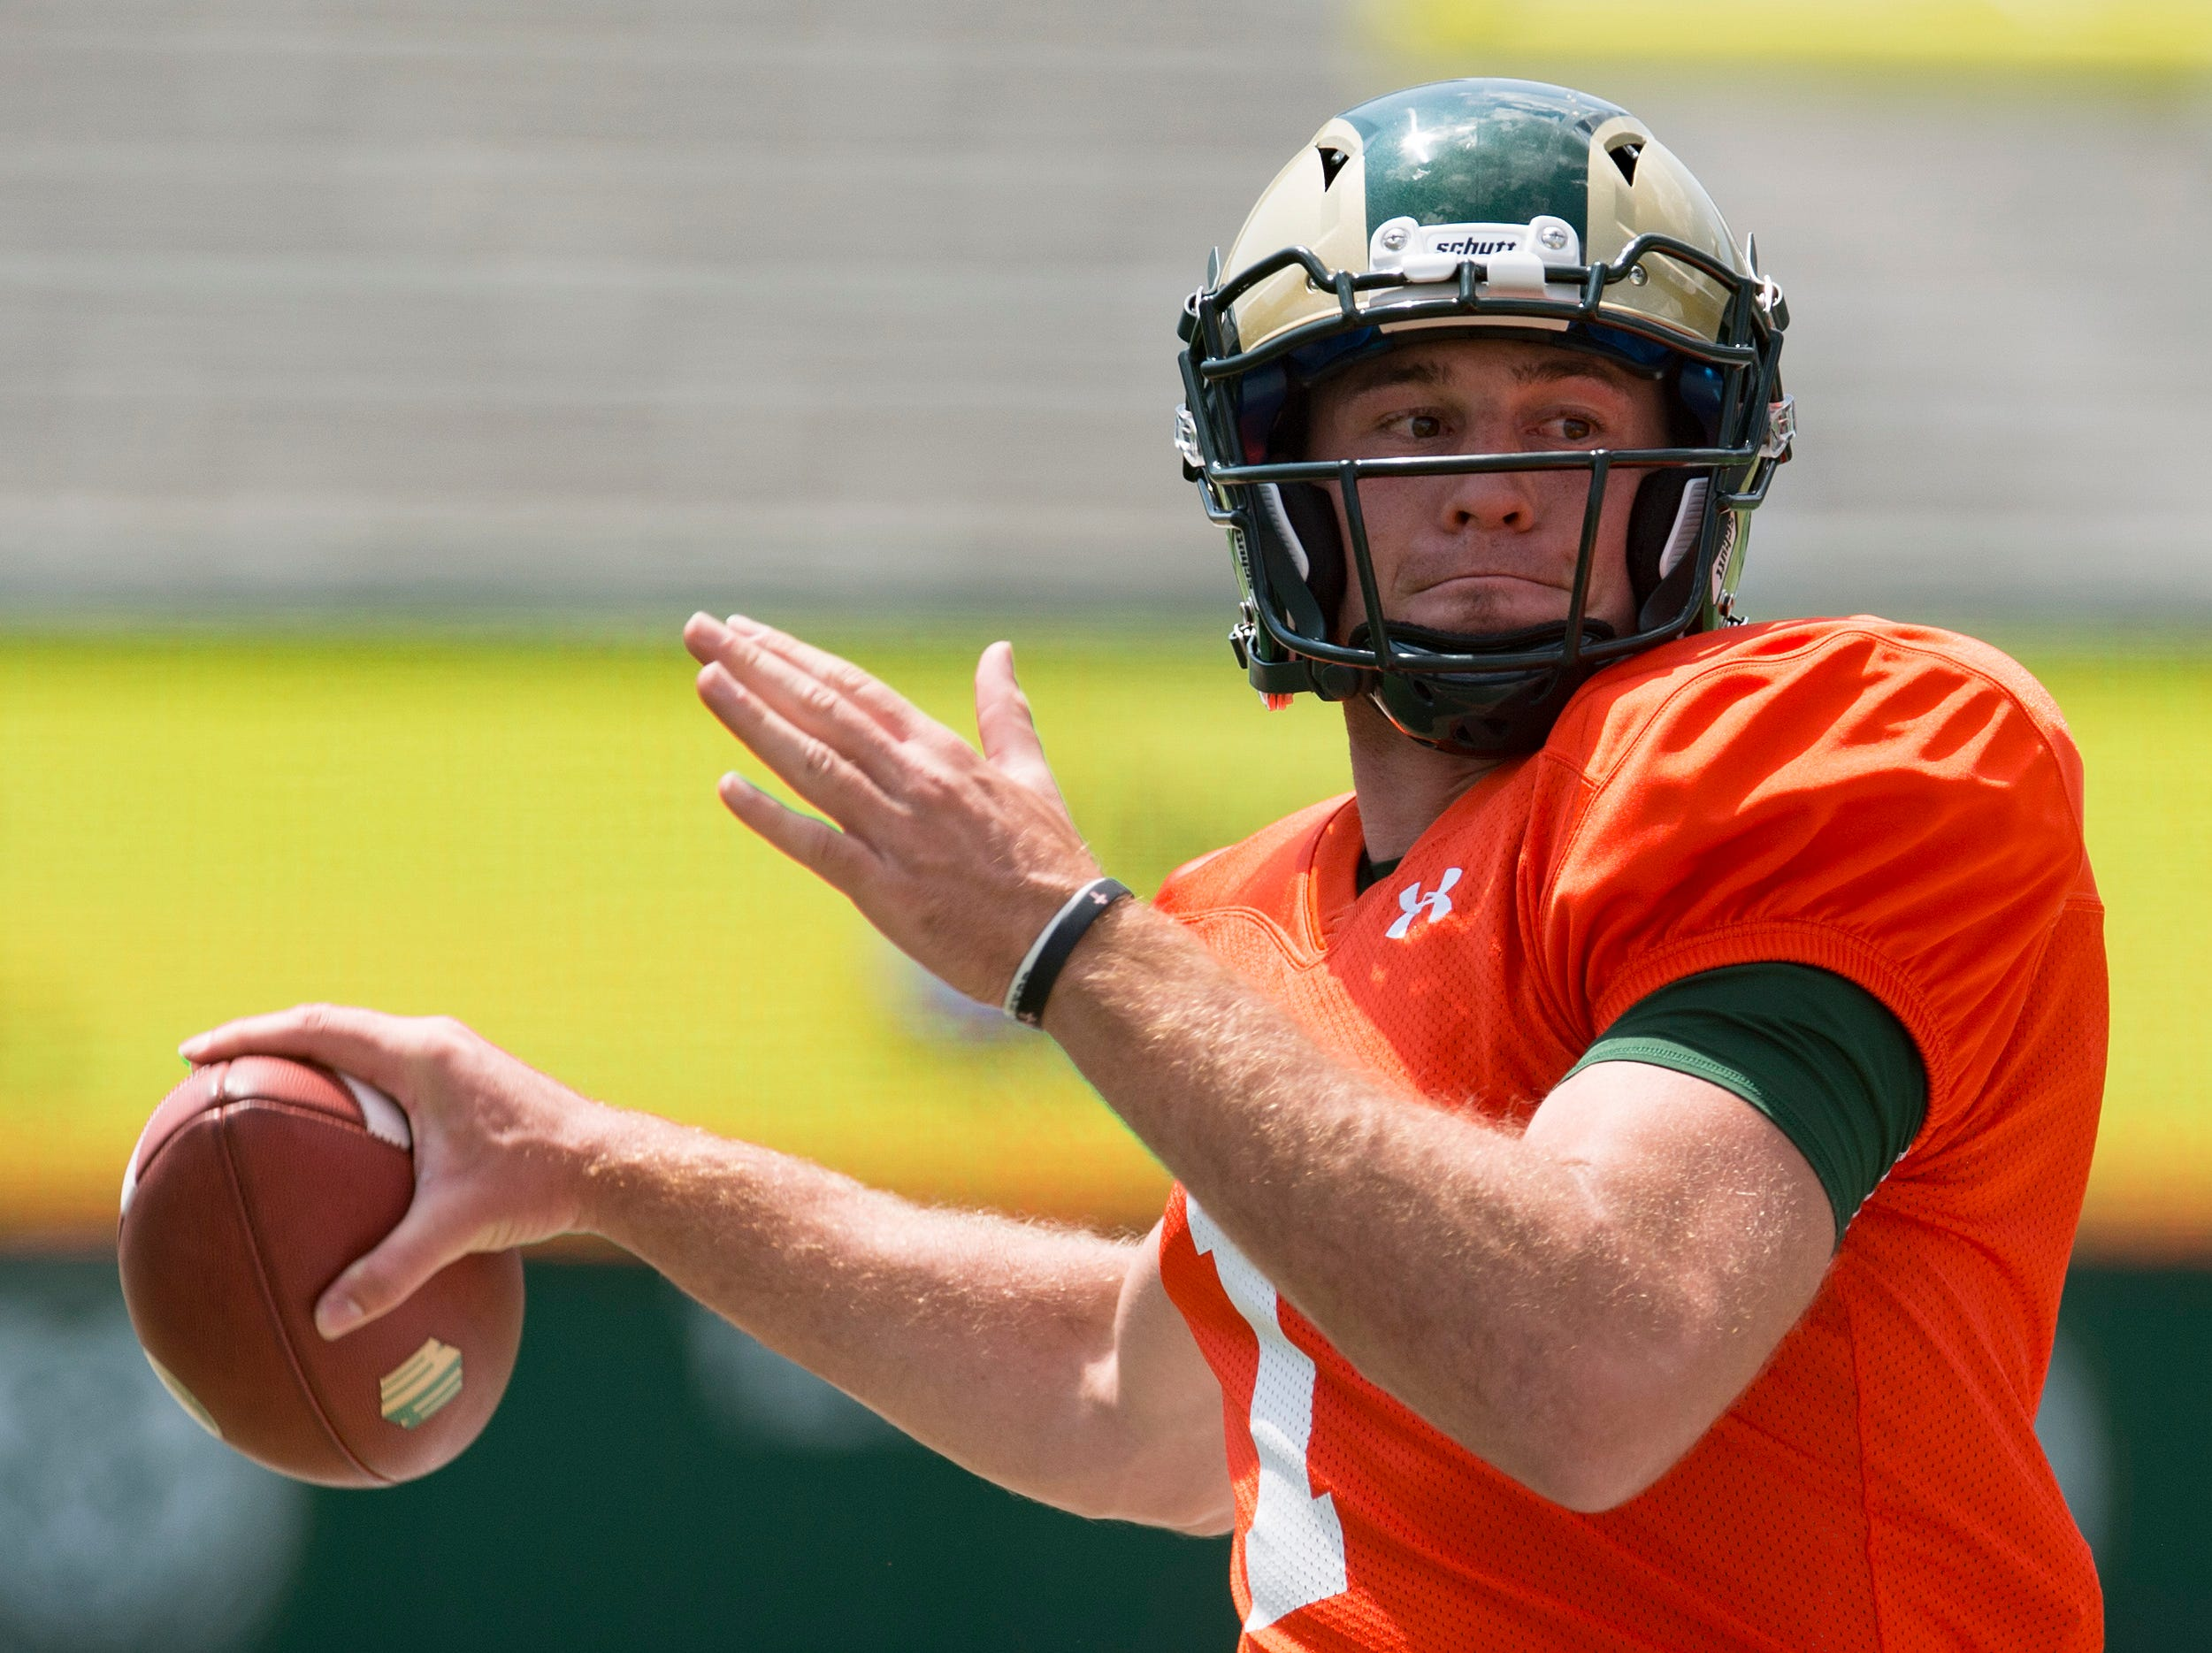 CSU quarterback K.J. Carta-Samuels passes the ball as he warms up for a scrimmage during an open house hosted by the Rams outside of Canvas Stadium on Saturday, August 4, 2018. Carta-Samuels is a redshirt senior graduate transfer from the University of Washington.